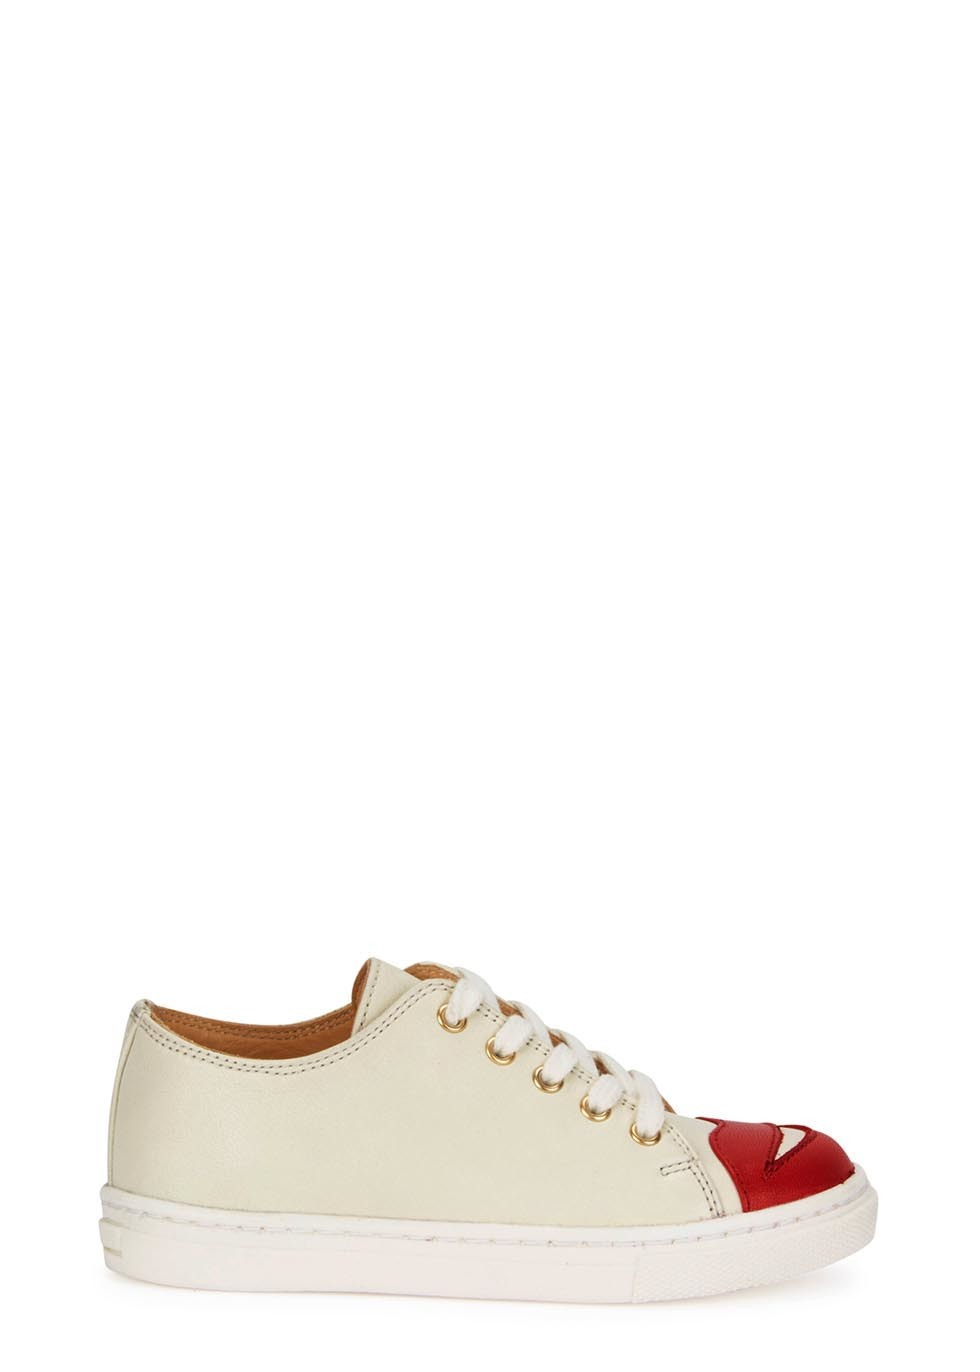 Kiss Me Off White Trainers 2 8 Years - predominant colour: ivory/cream; secondary colour: true red; occasions: casual; material: leather; heel height: flat; toe: round toe; style: trainers; finish: plain; pattern: colourblock; shoe detail: moulded soul; season: a/w 2015; wardrobe: highlight